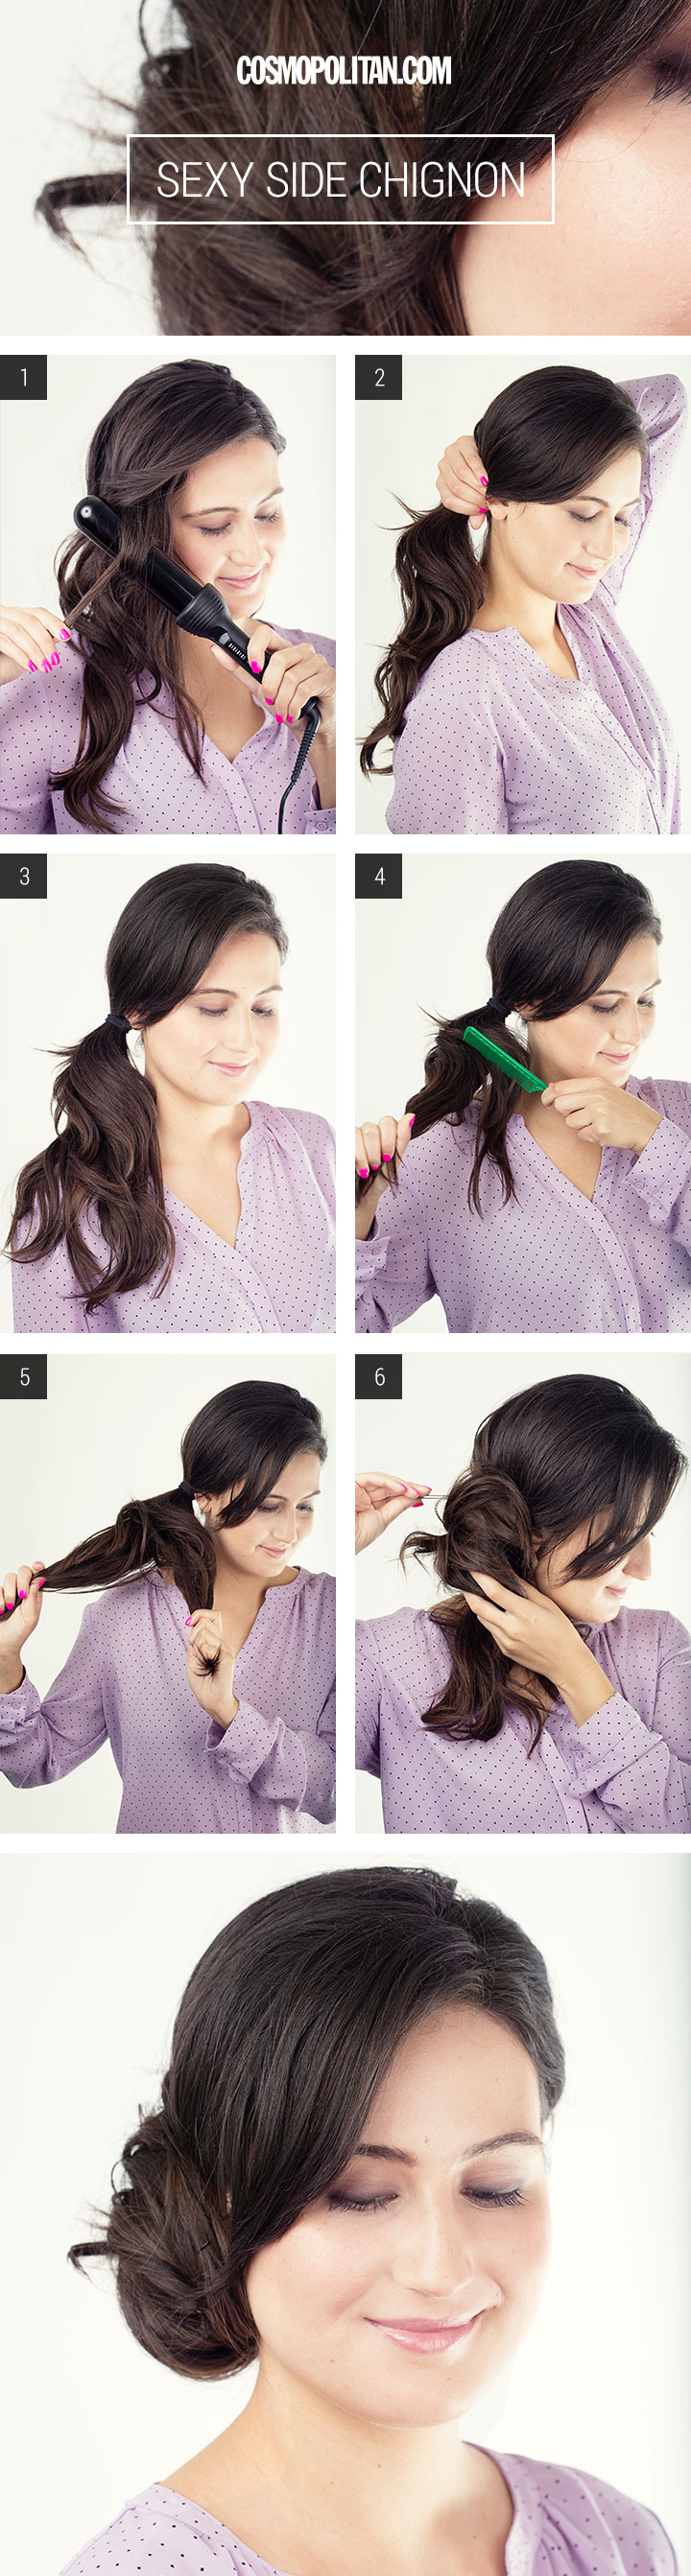 Phenomenal Hair Tutorials 15 Simple Easy Hairstyles You Should Not Miss Hairstyle Inspiration Daily Dogsangcom